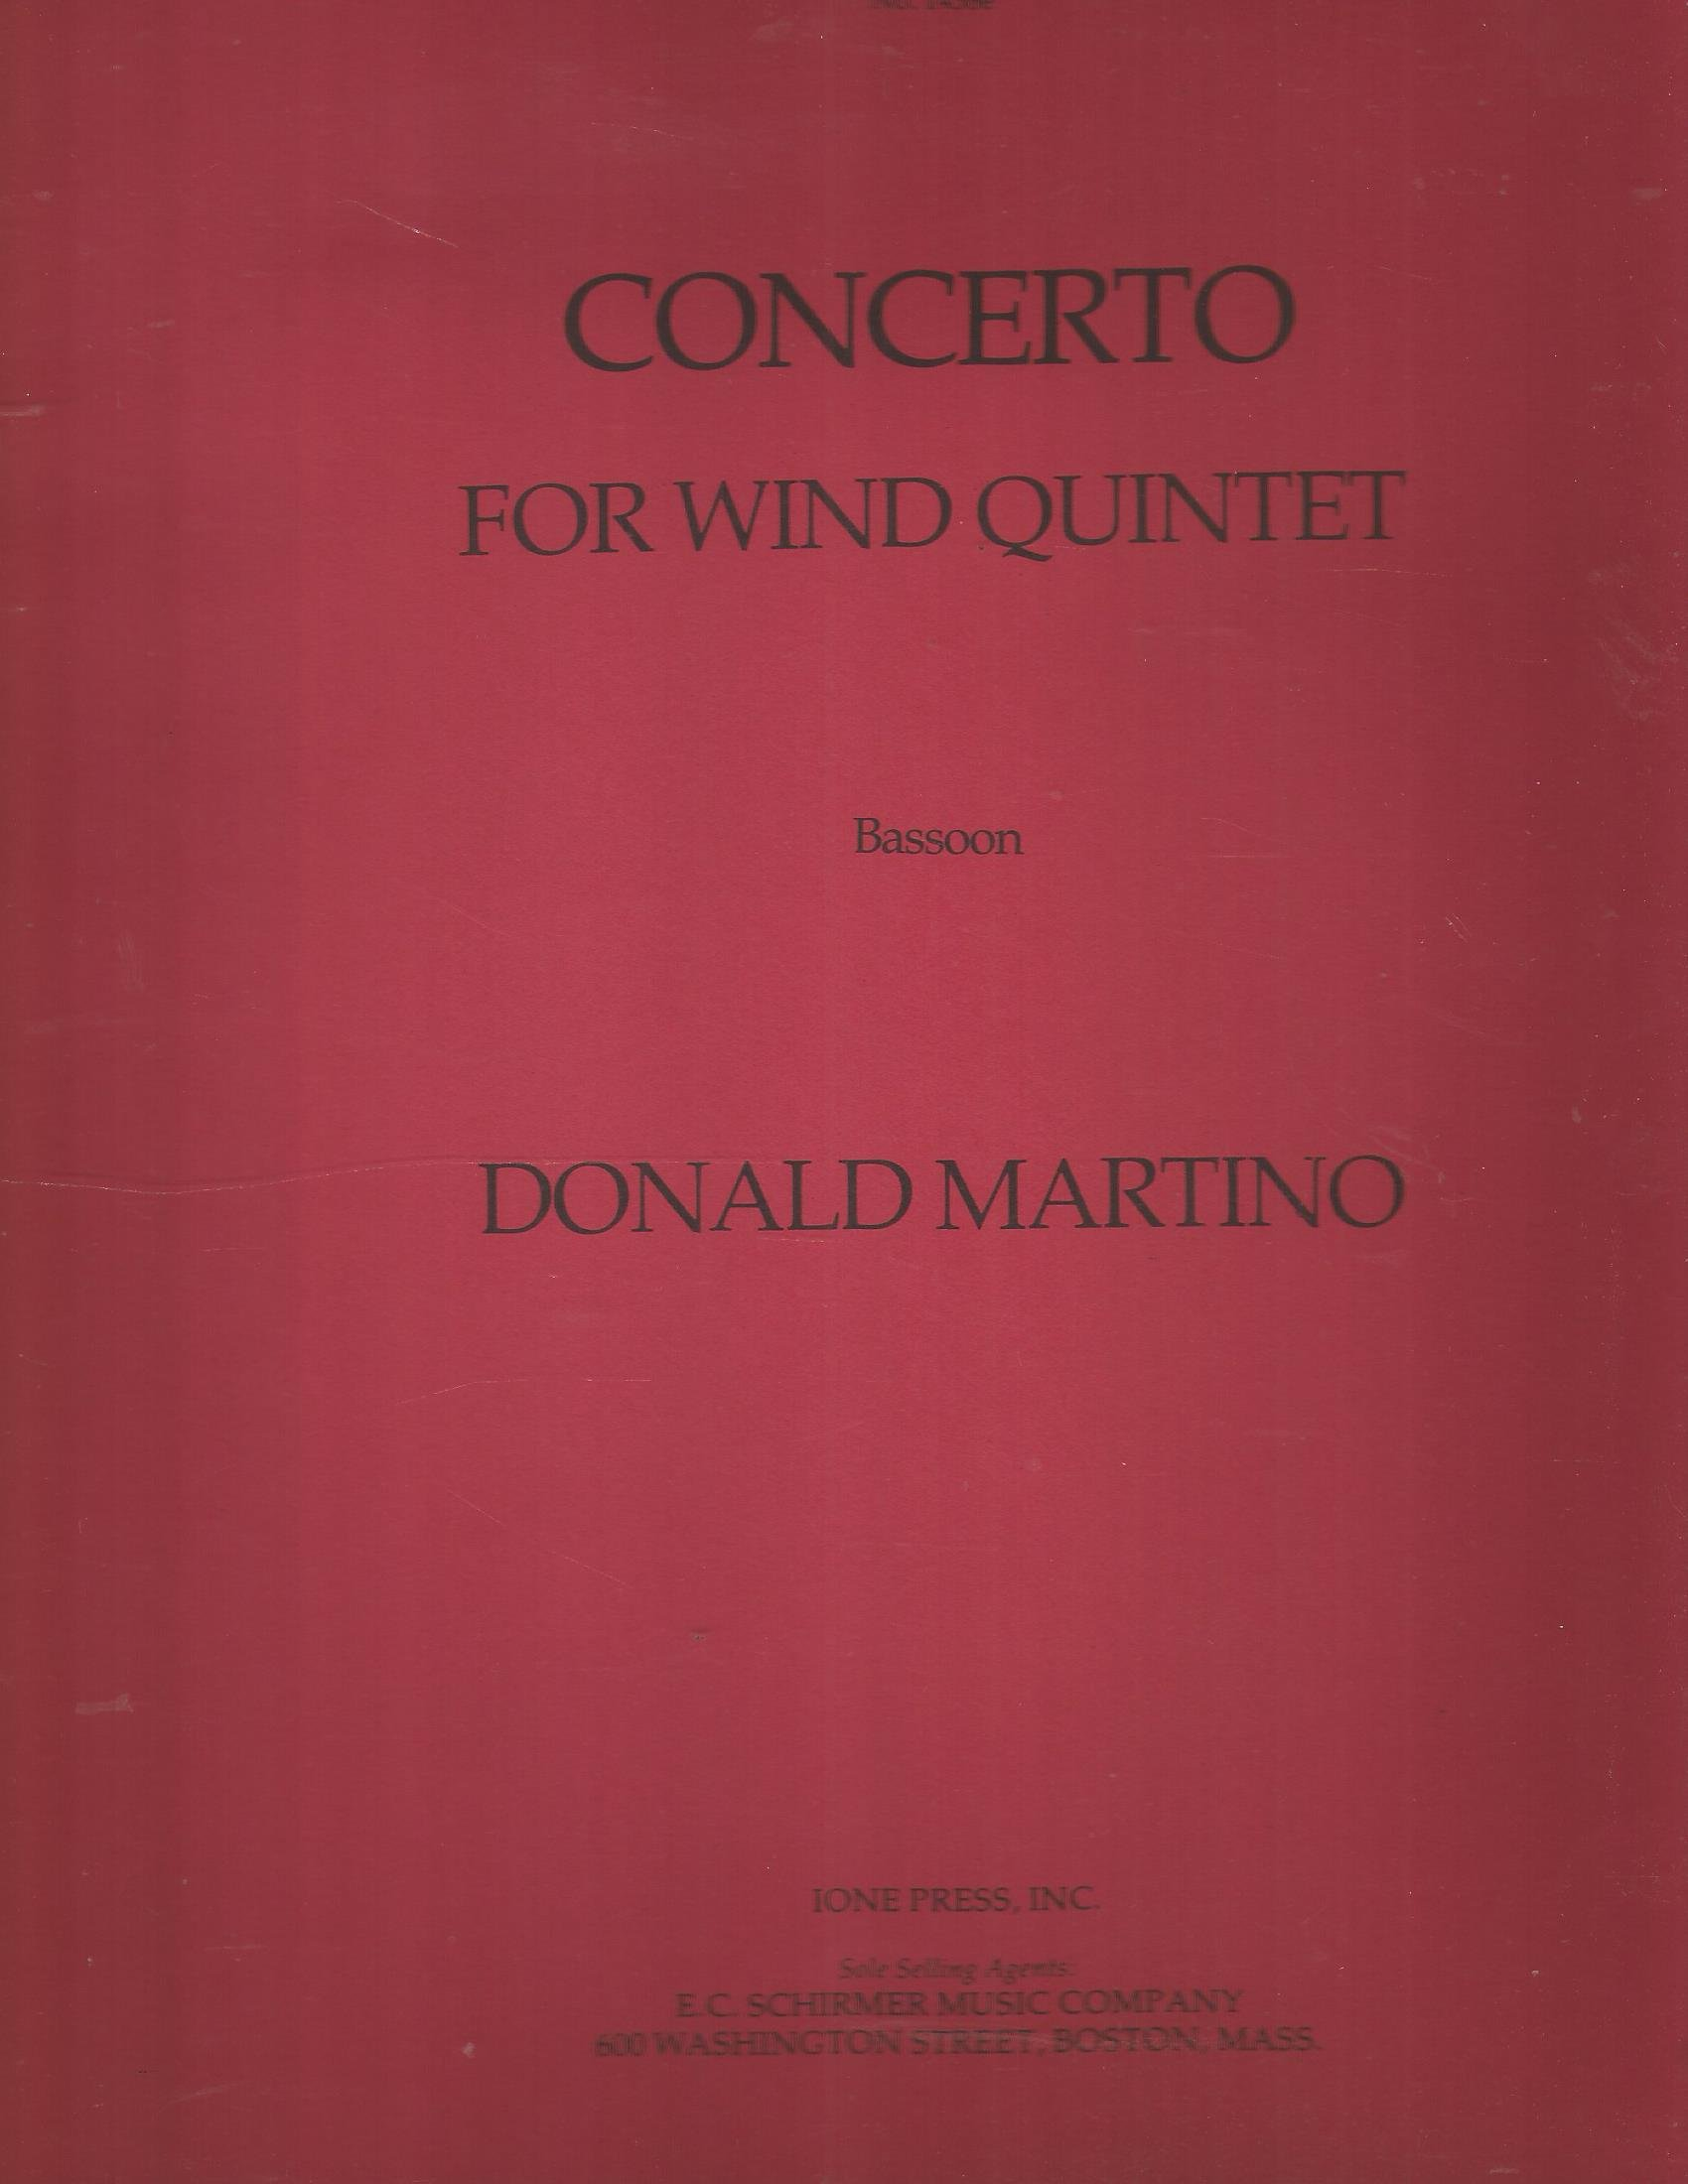 Donald Martino. Concerto for Wind Quintet. Bassoon Part, Ione Press, No.1438e.